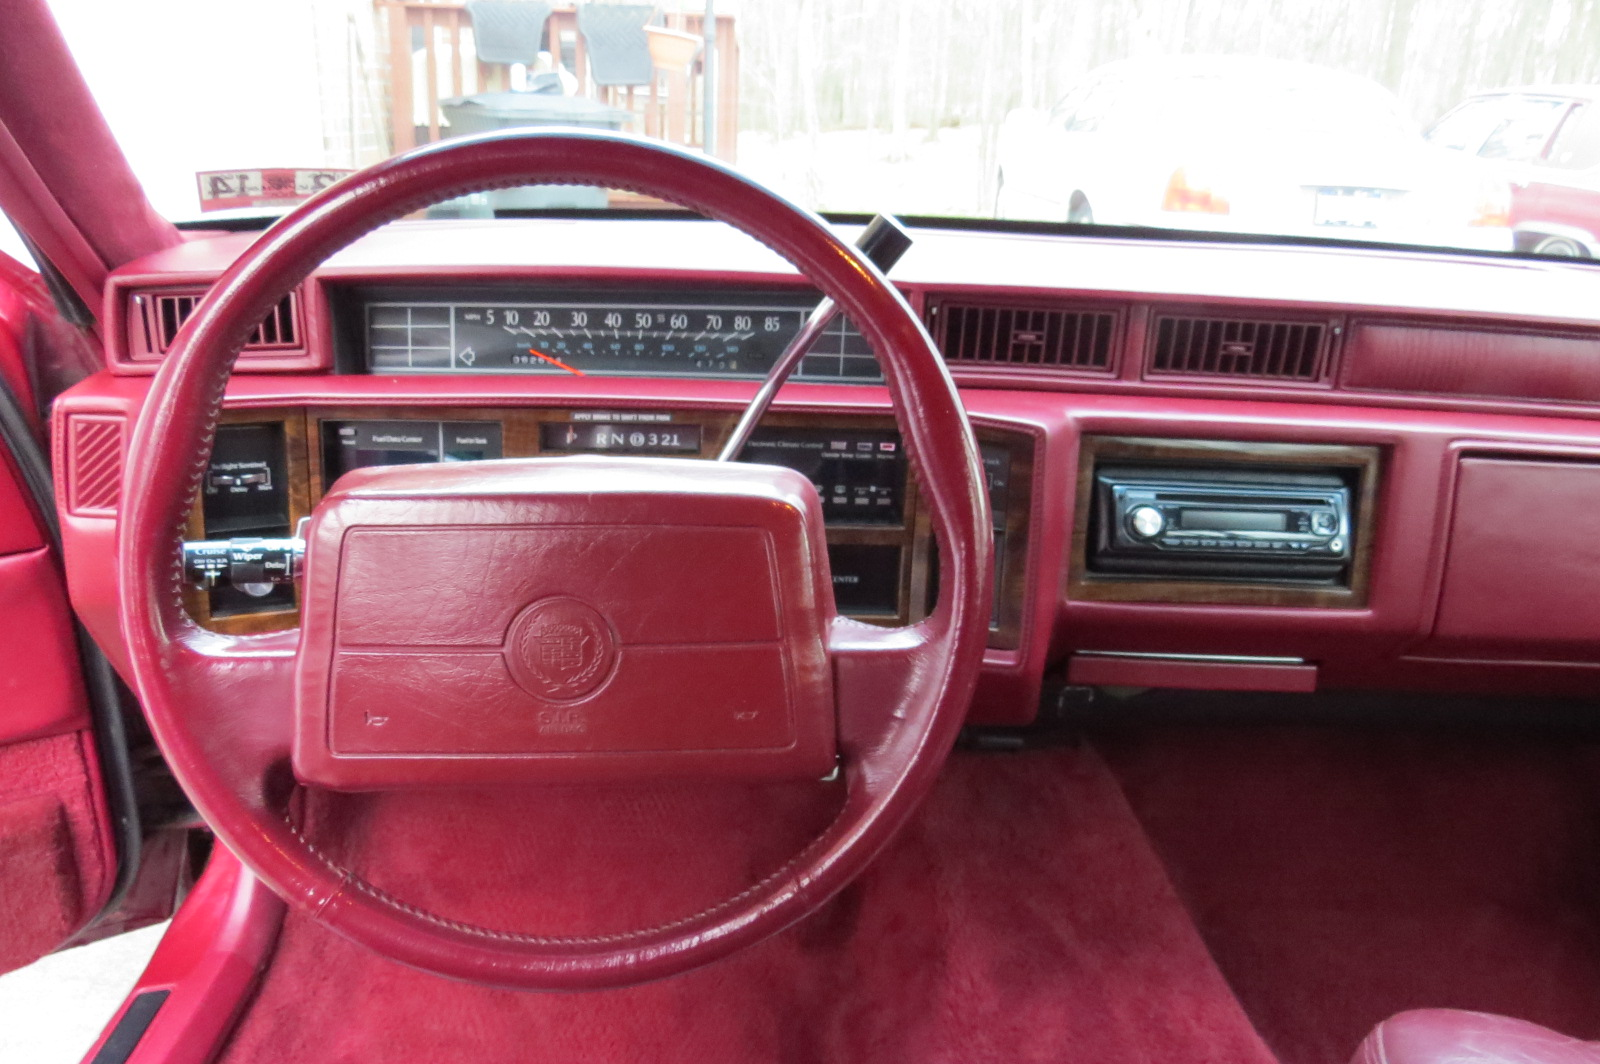 Cadillac Deville habitacle 1993